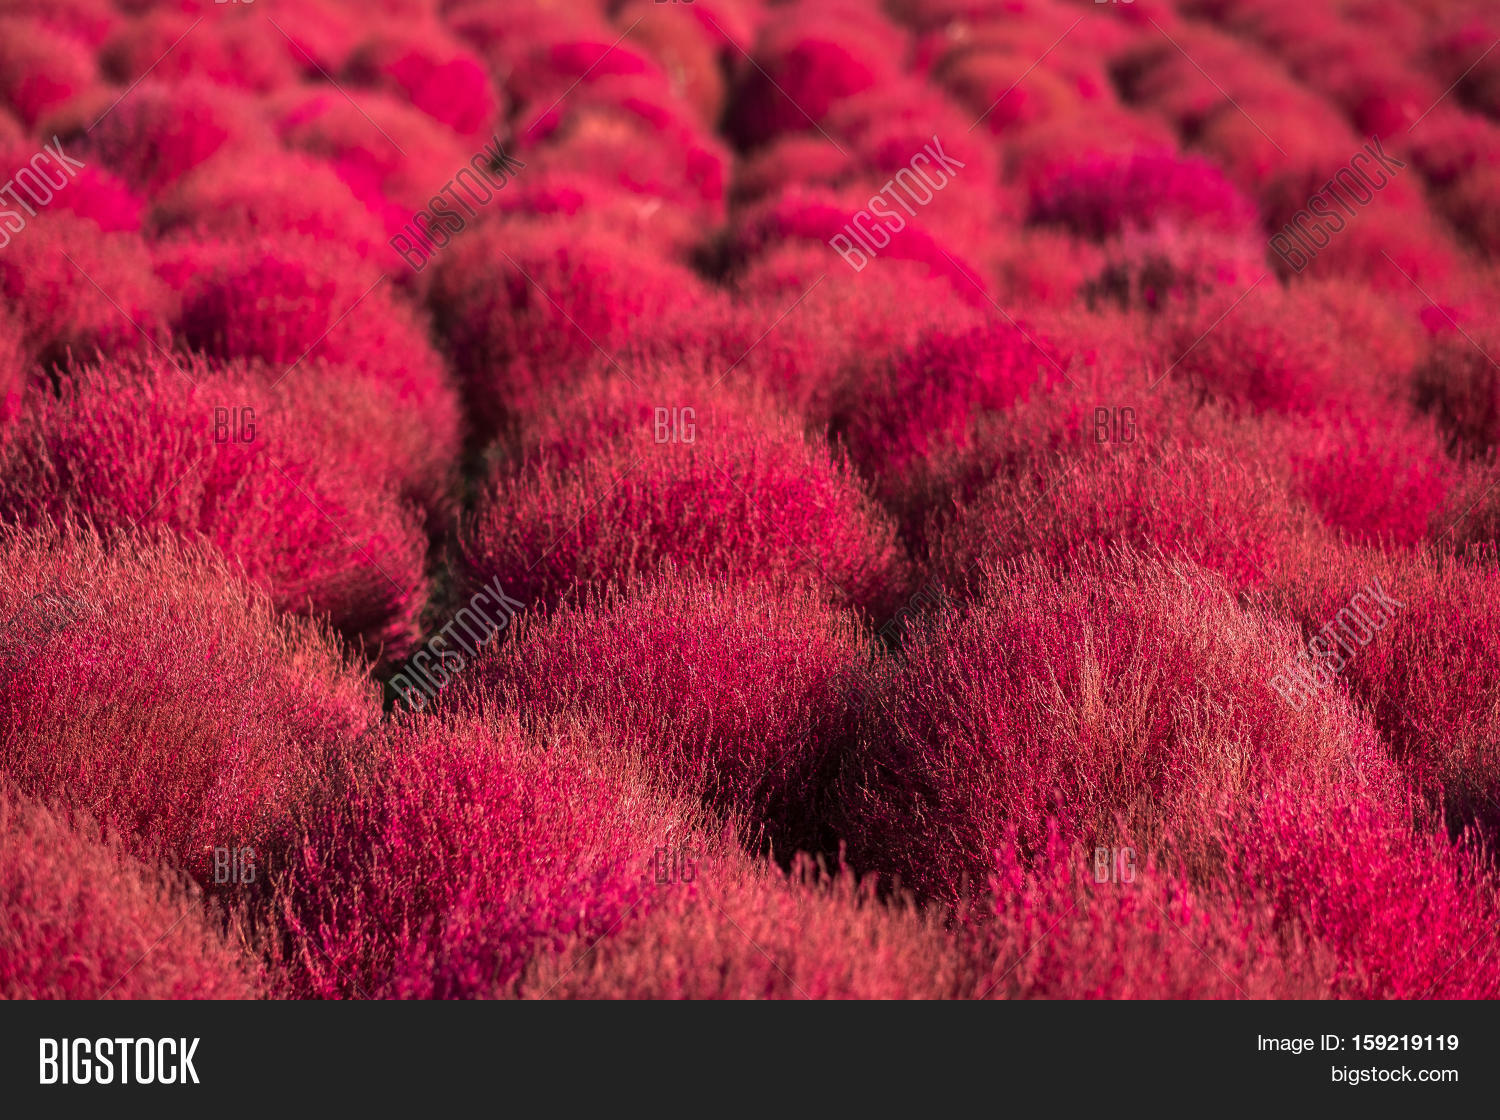 Kochia Scoparia Field Image Photo Free Trial Bigstock